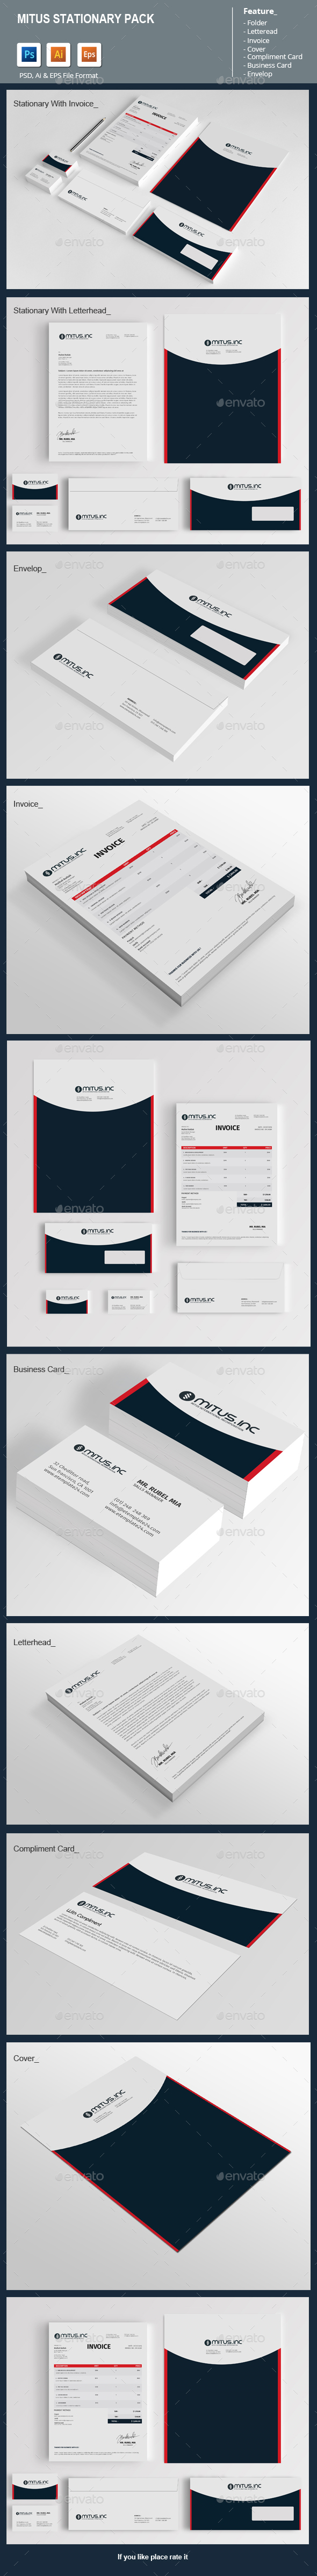 Mitus Stationary Pack - Stationery Print Templates